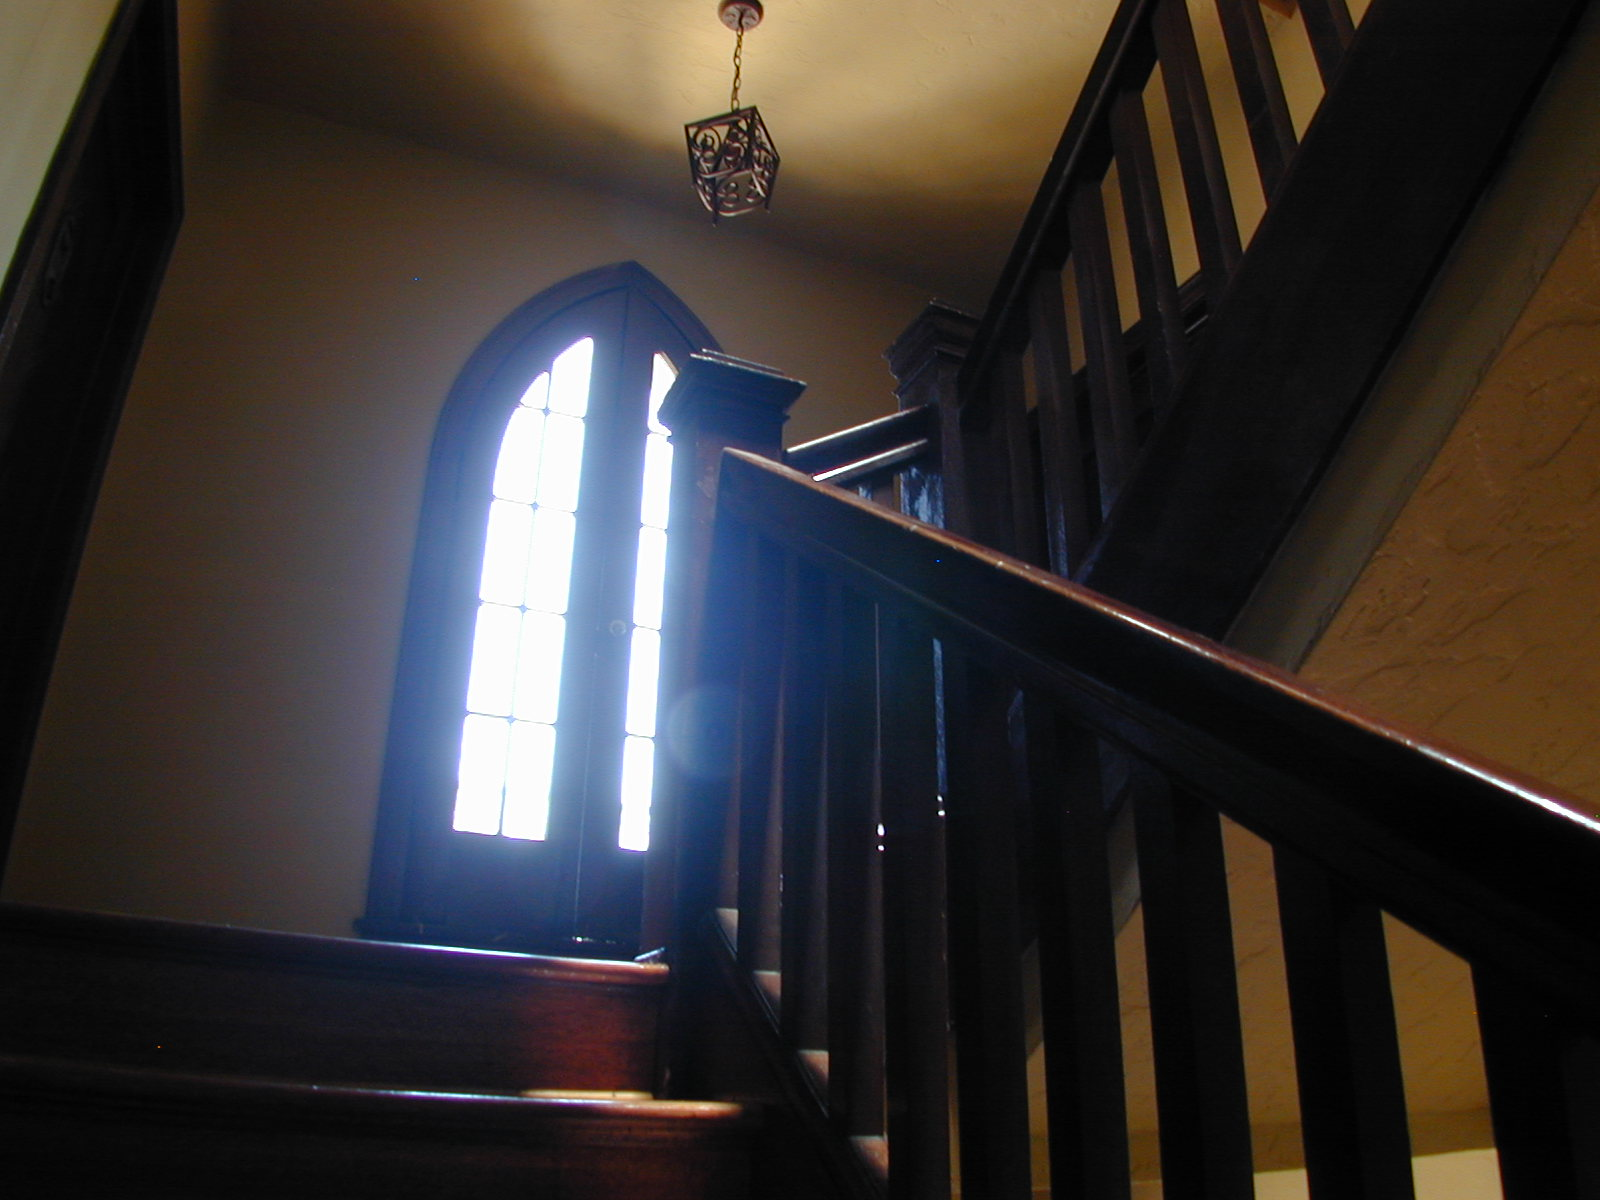 > The Gothic entry stairway